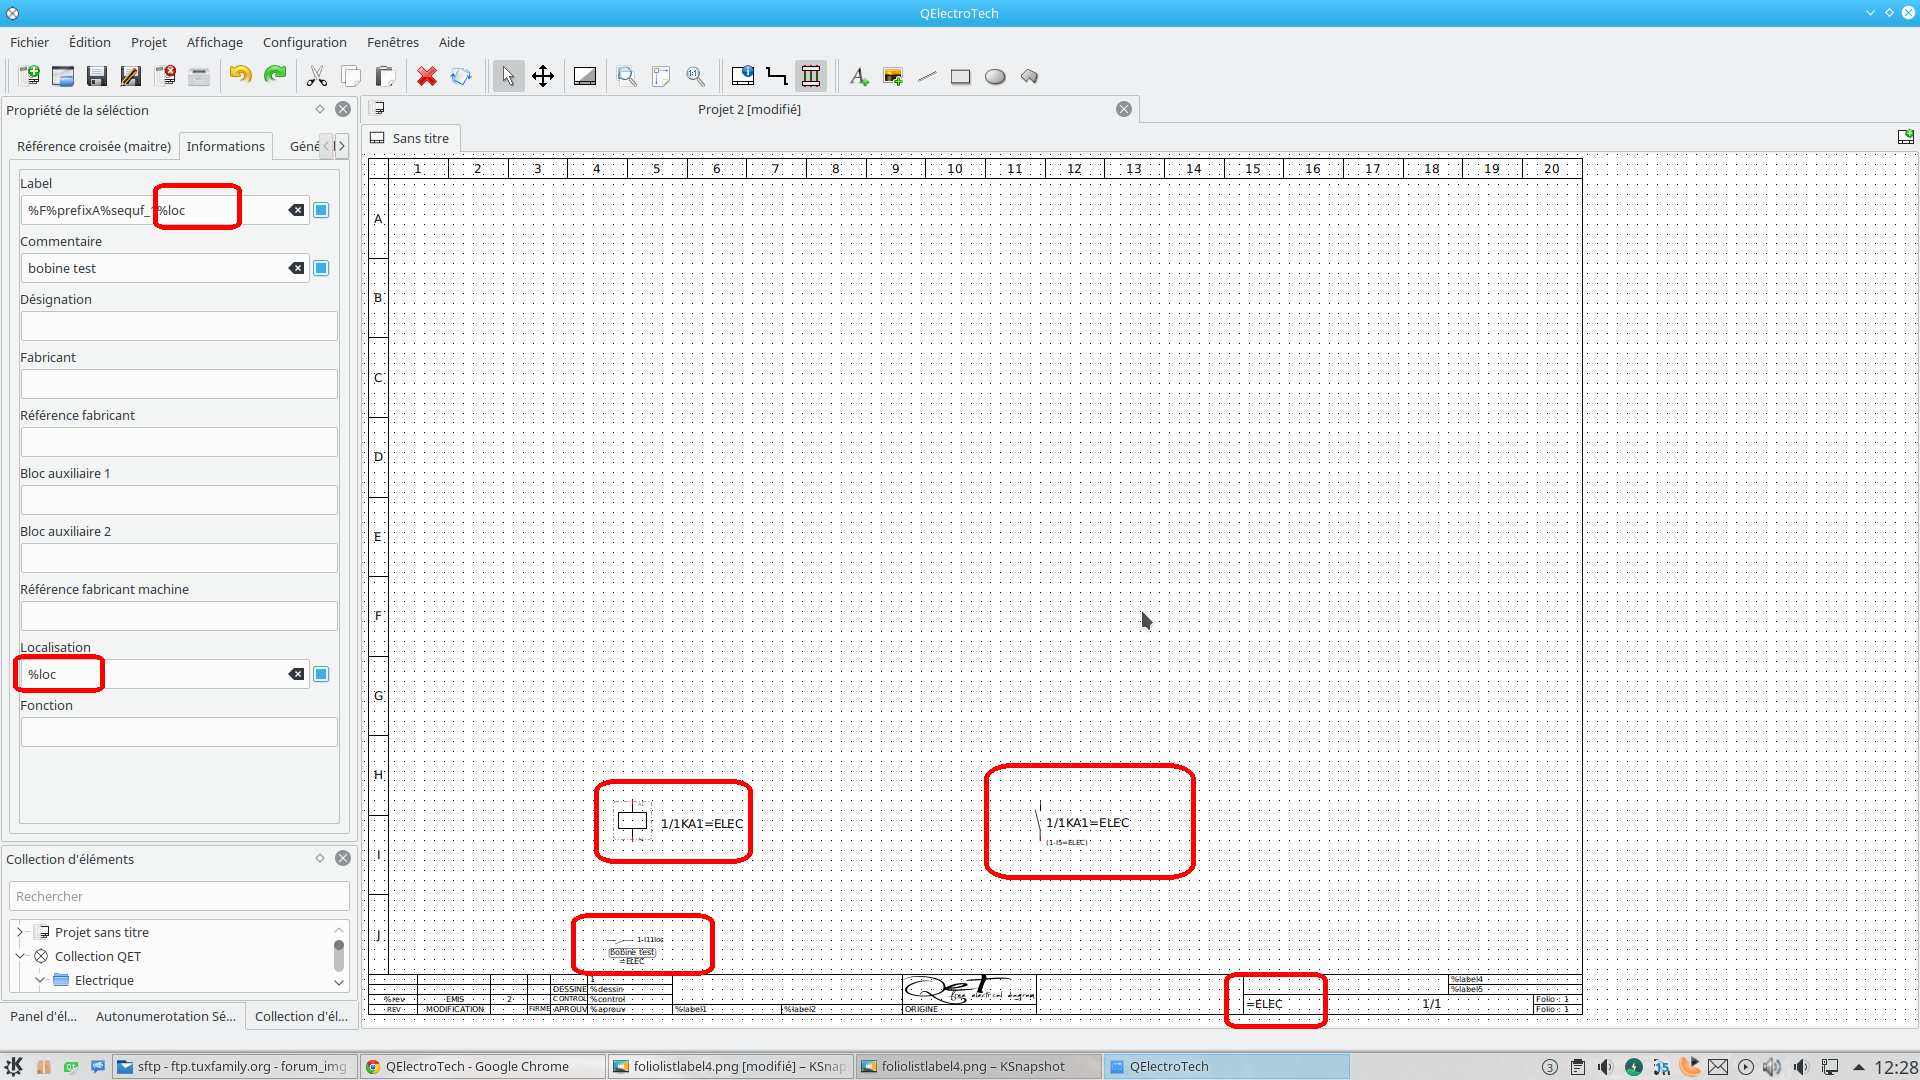 Edited Making Our Own Cross Referencing Symbols Page 1 En